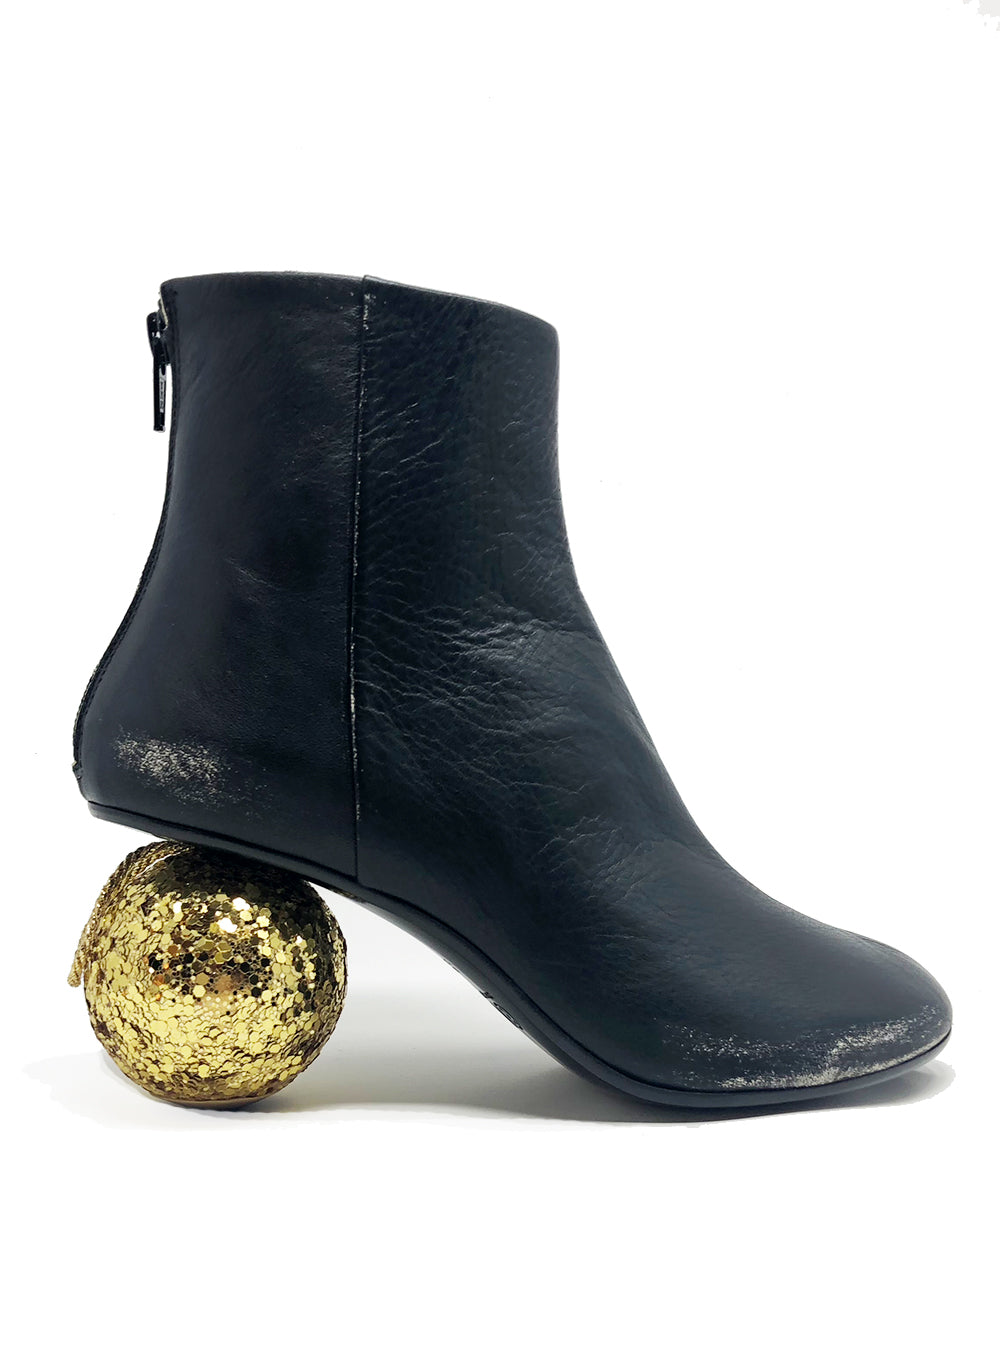 MM6 MAISON MARGIELA | Gold Glitter Ball Heel Ankle Boots